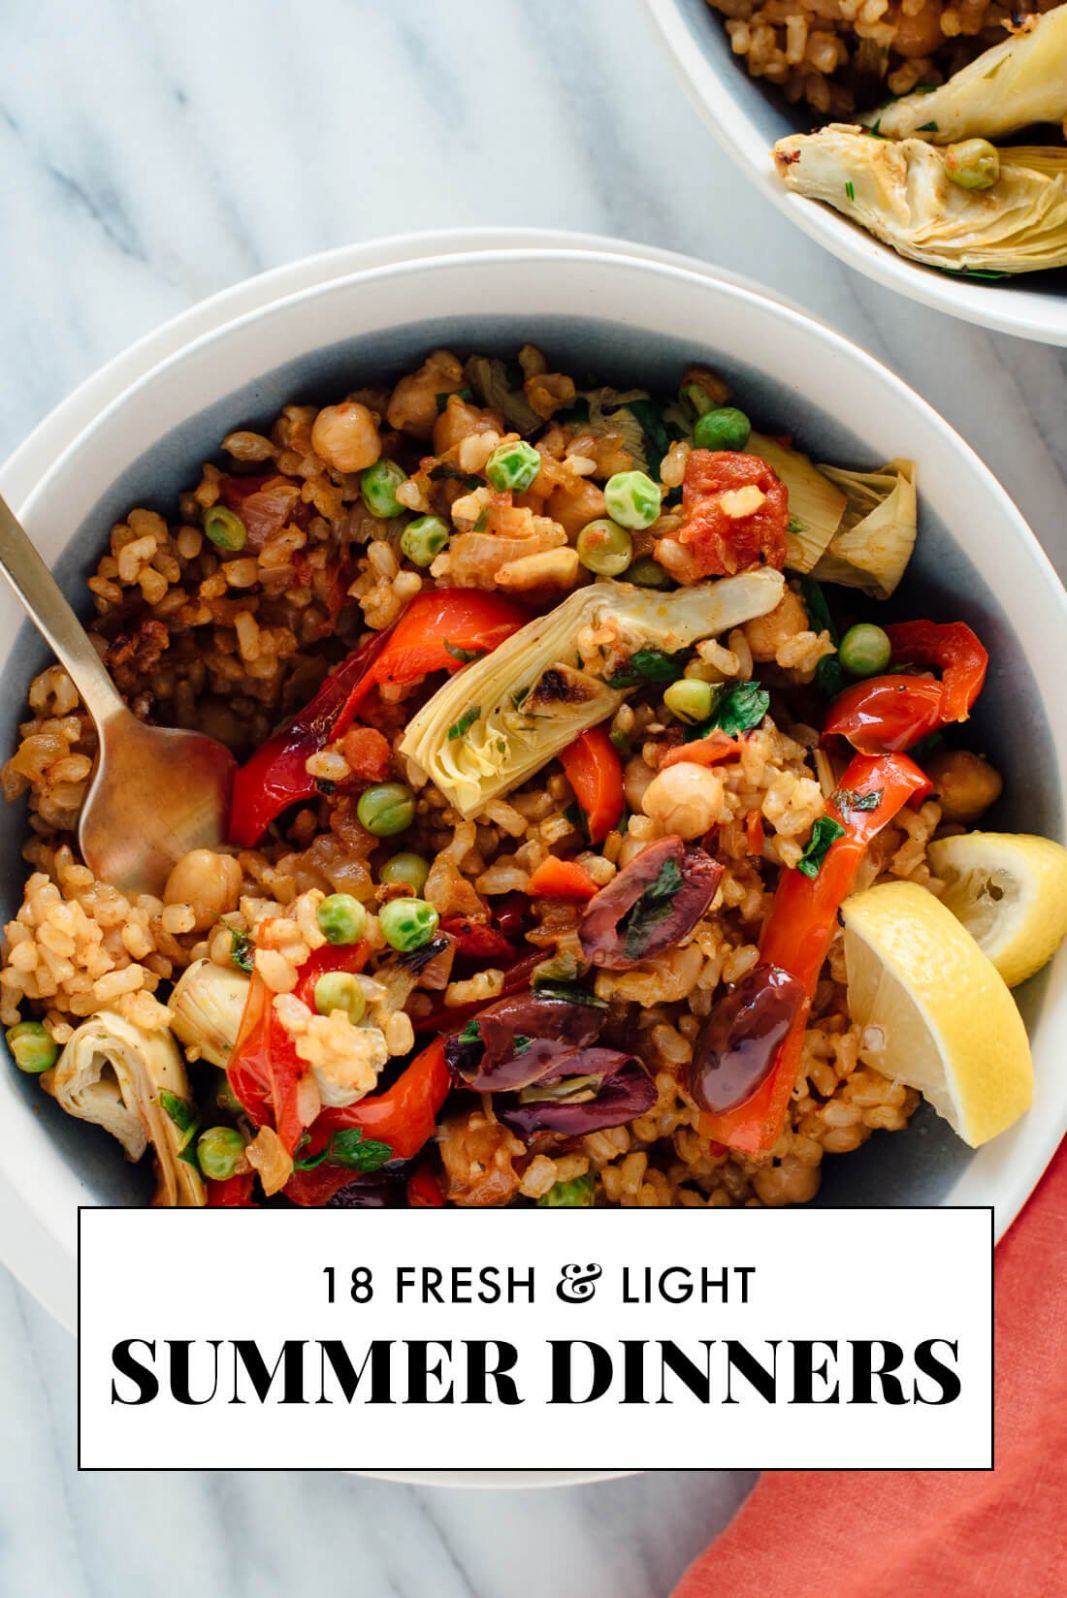 9 Light Summer Dinner Recipes - Cookie and Kate - Summer Recipes Easy Dinner